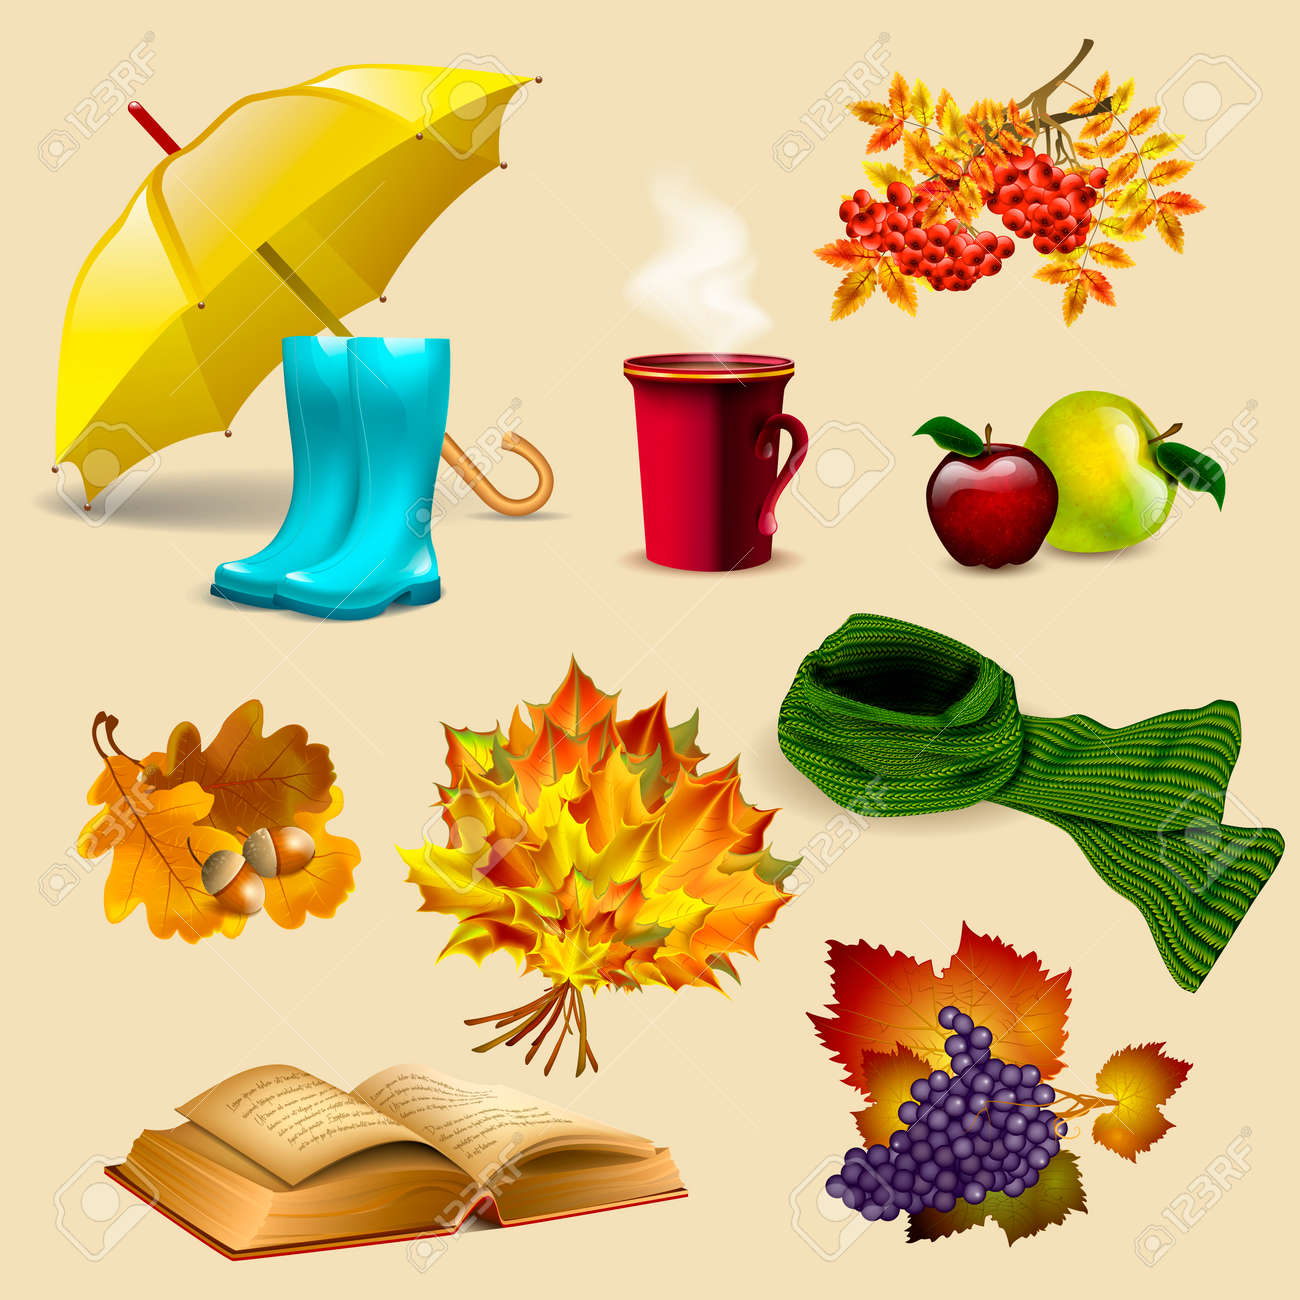 5747c9941cb Set of autumn elements and objects, autumn leaves, fruits, umbrella, boots,